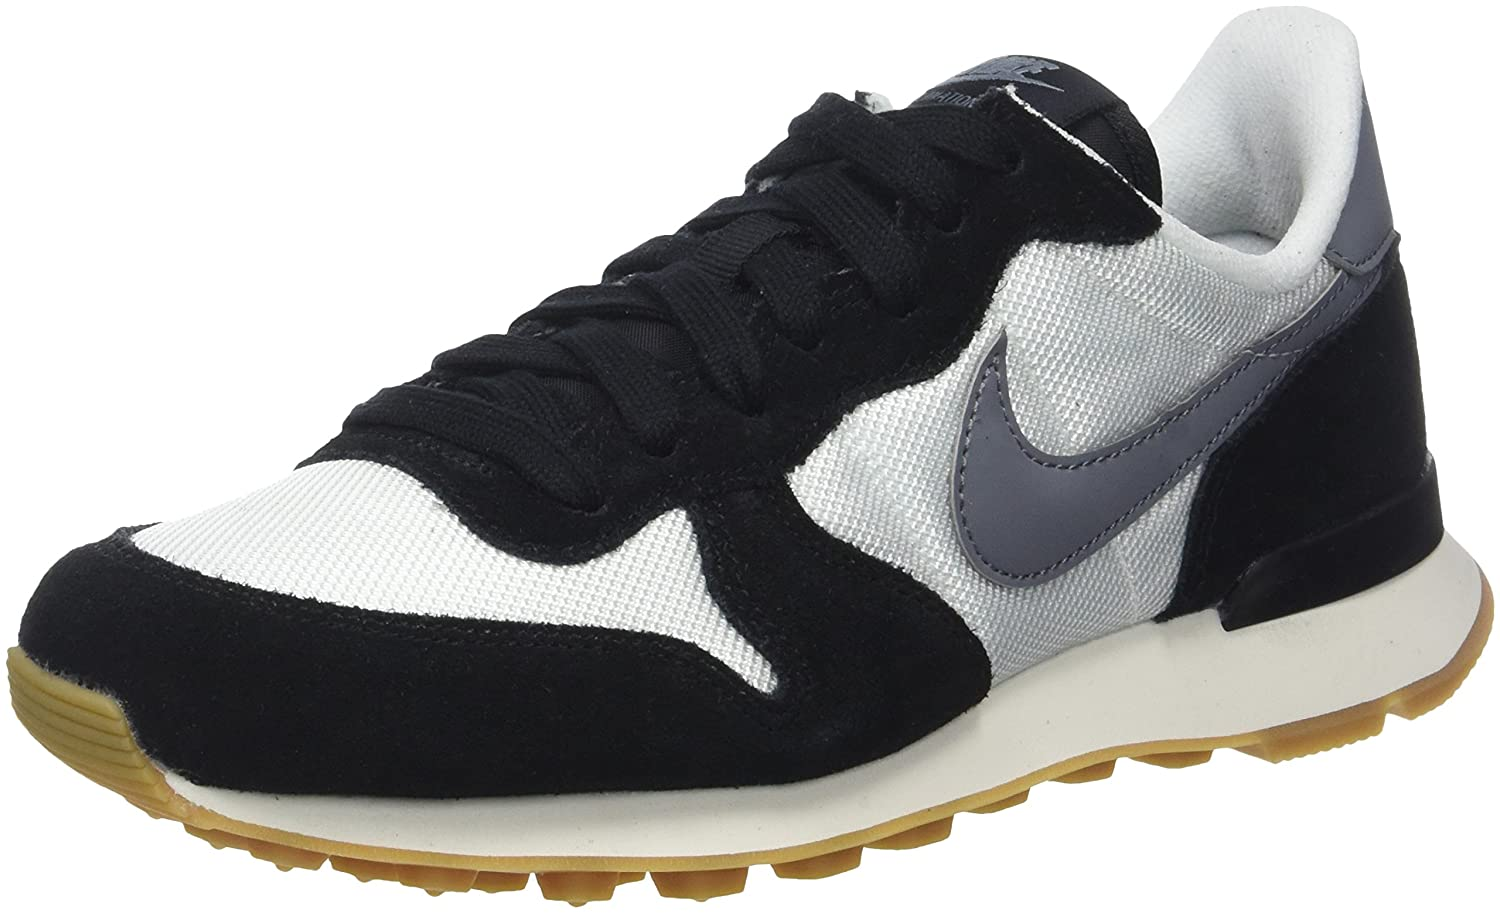 promo code 42338 2f3a4 Nike Women s 828407-004 Fitness Shoes  Amazon.co.uk  Shoes   Bags